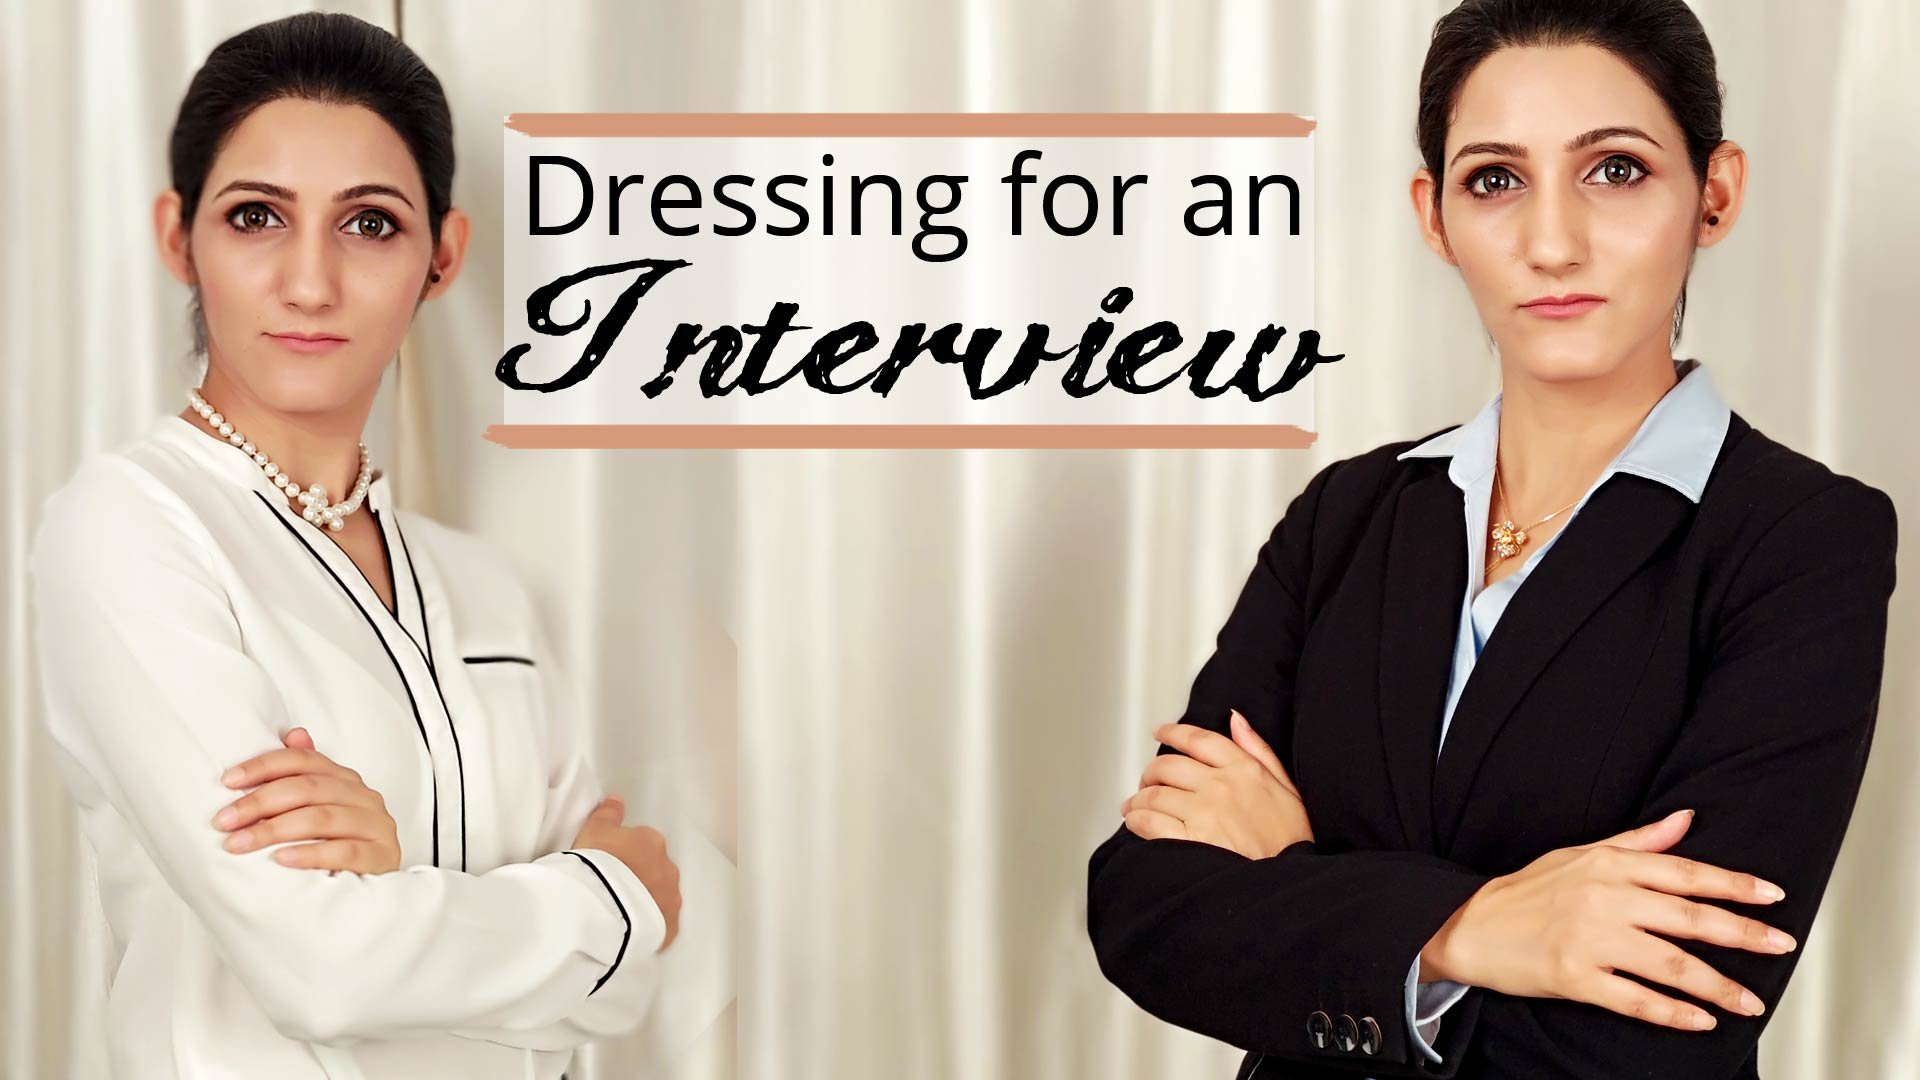 how-to-dress-for-an-interview-womens-guide-to-interview-dressing